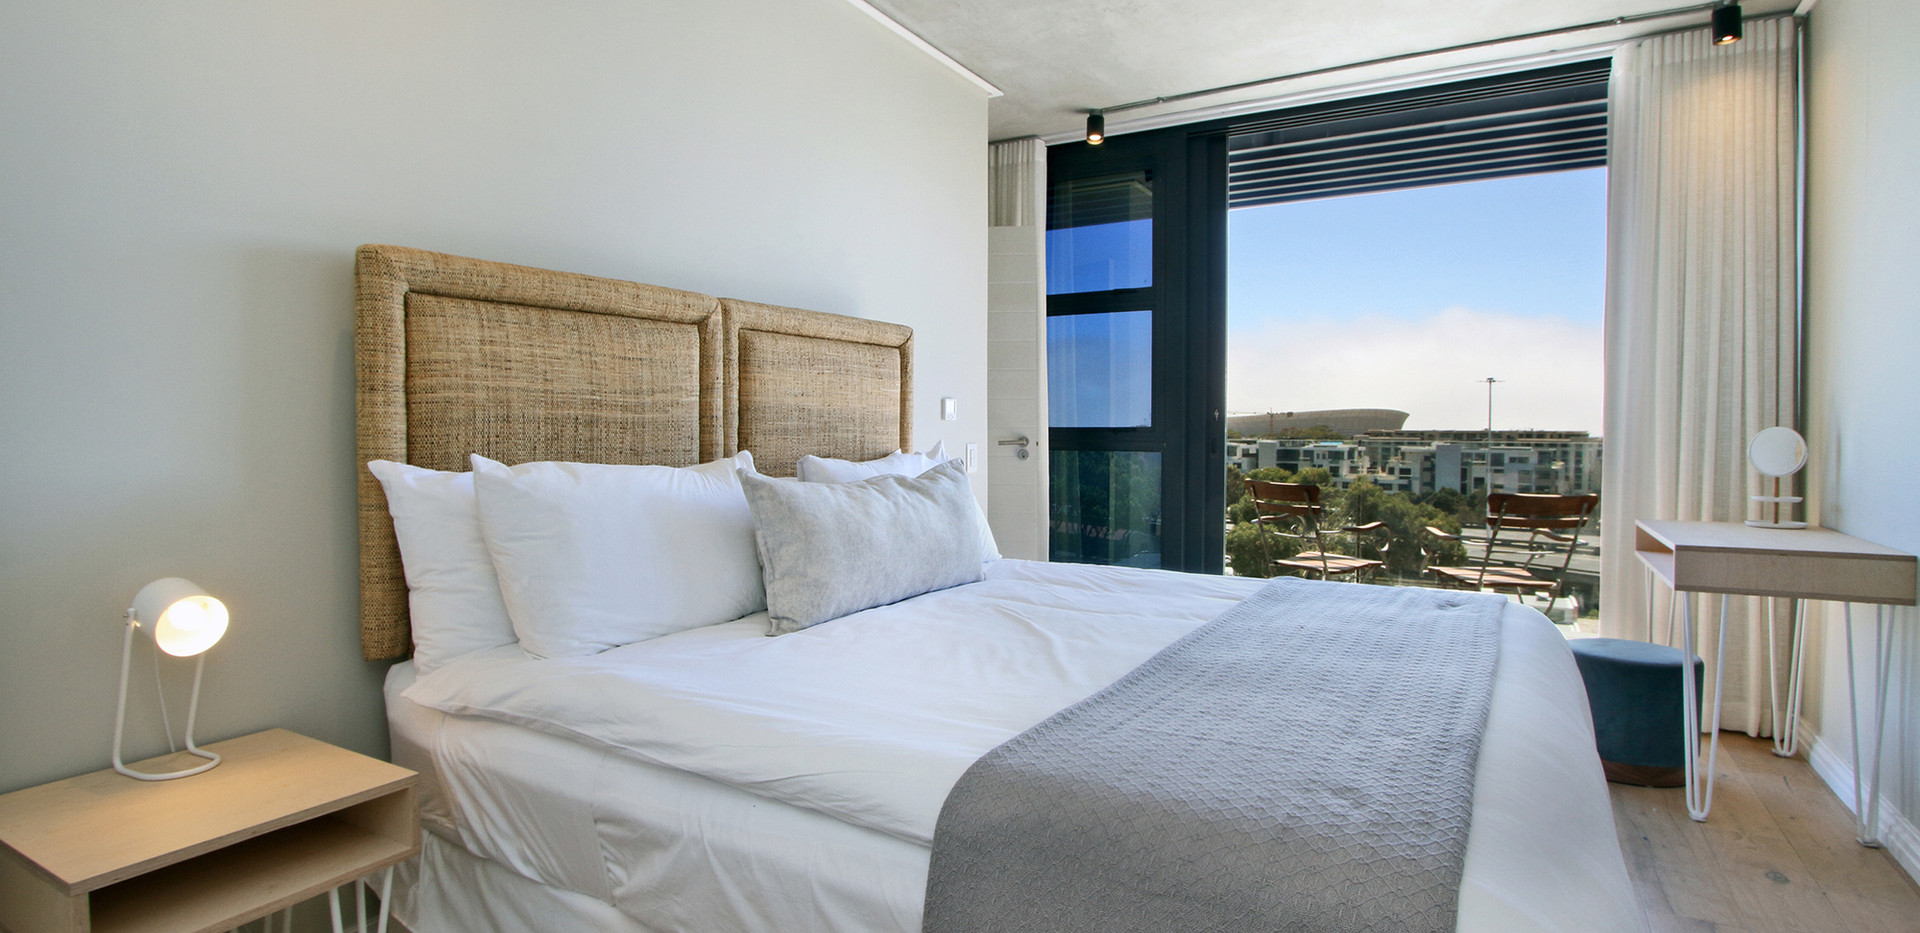 Bedroom_Penthouse_Docklands_609_ITC_1.jp